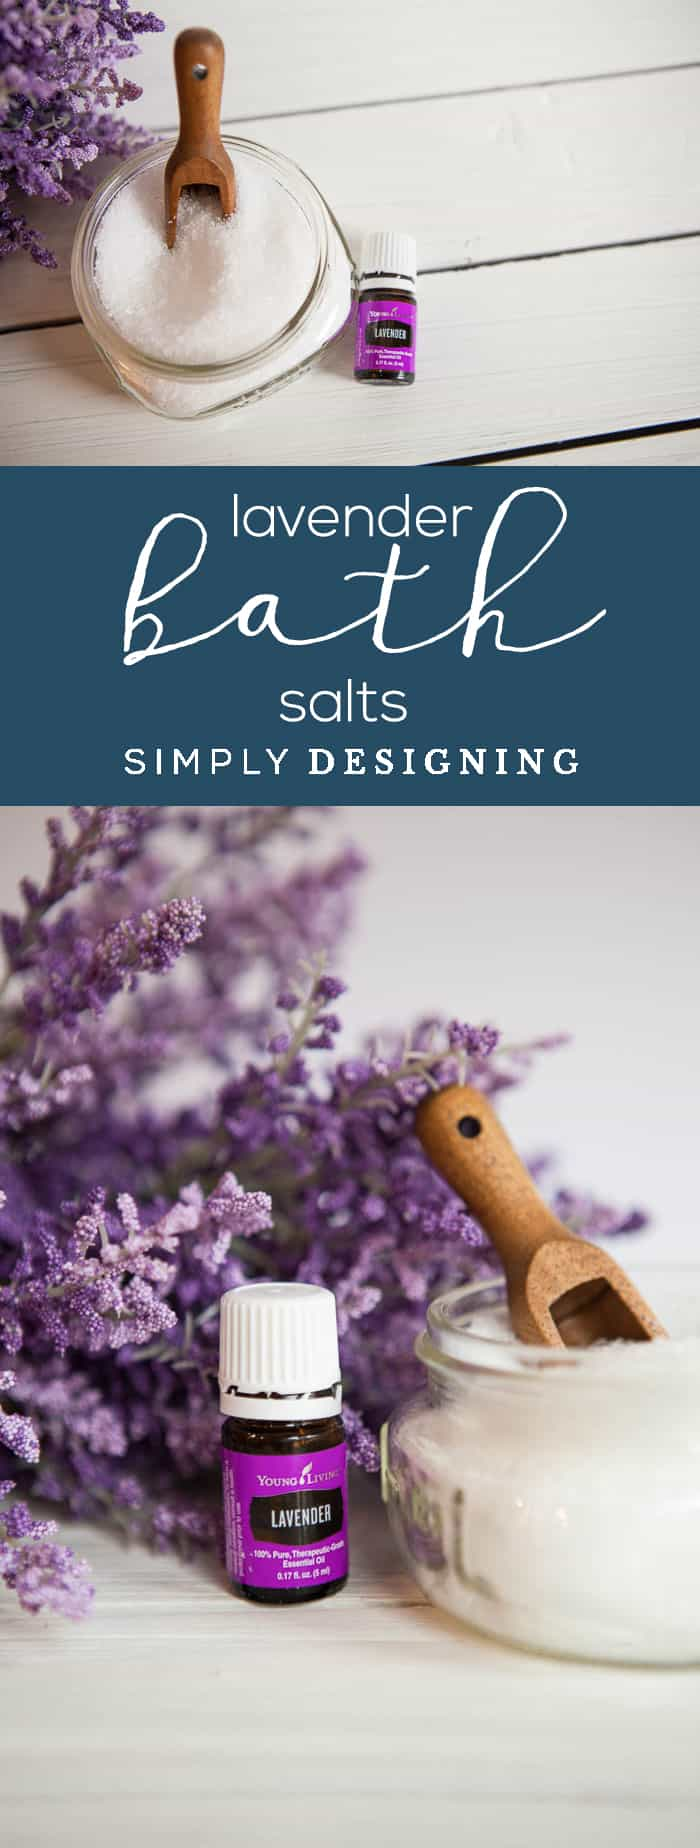 Lavender Bath Salts - this homemade bath salt recipe is so easy to make and will save you so much money too